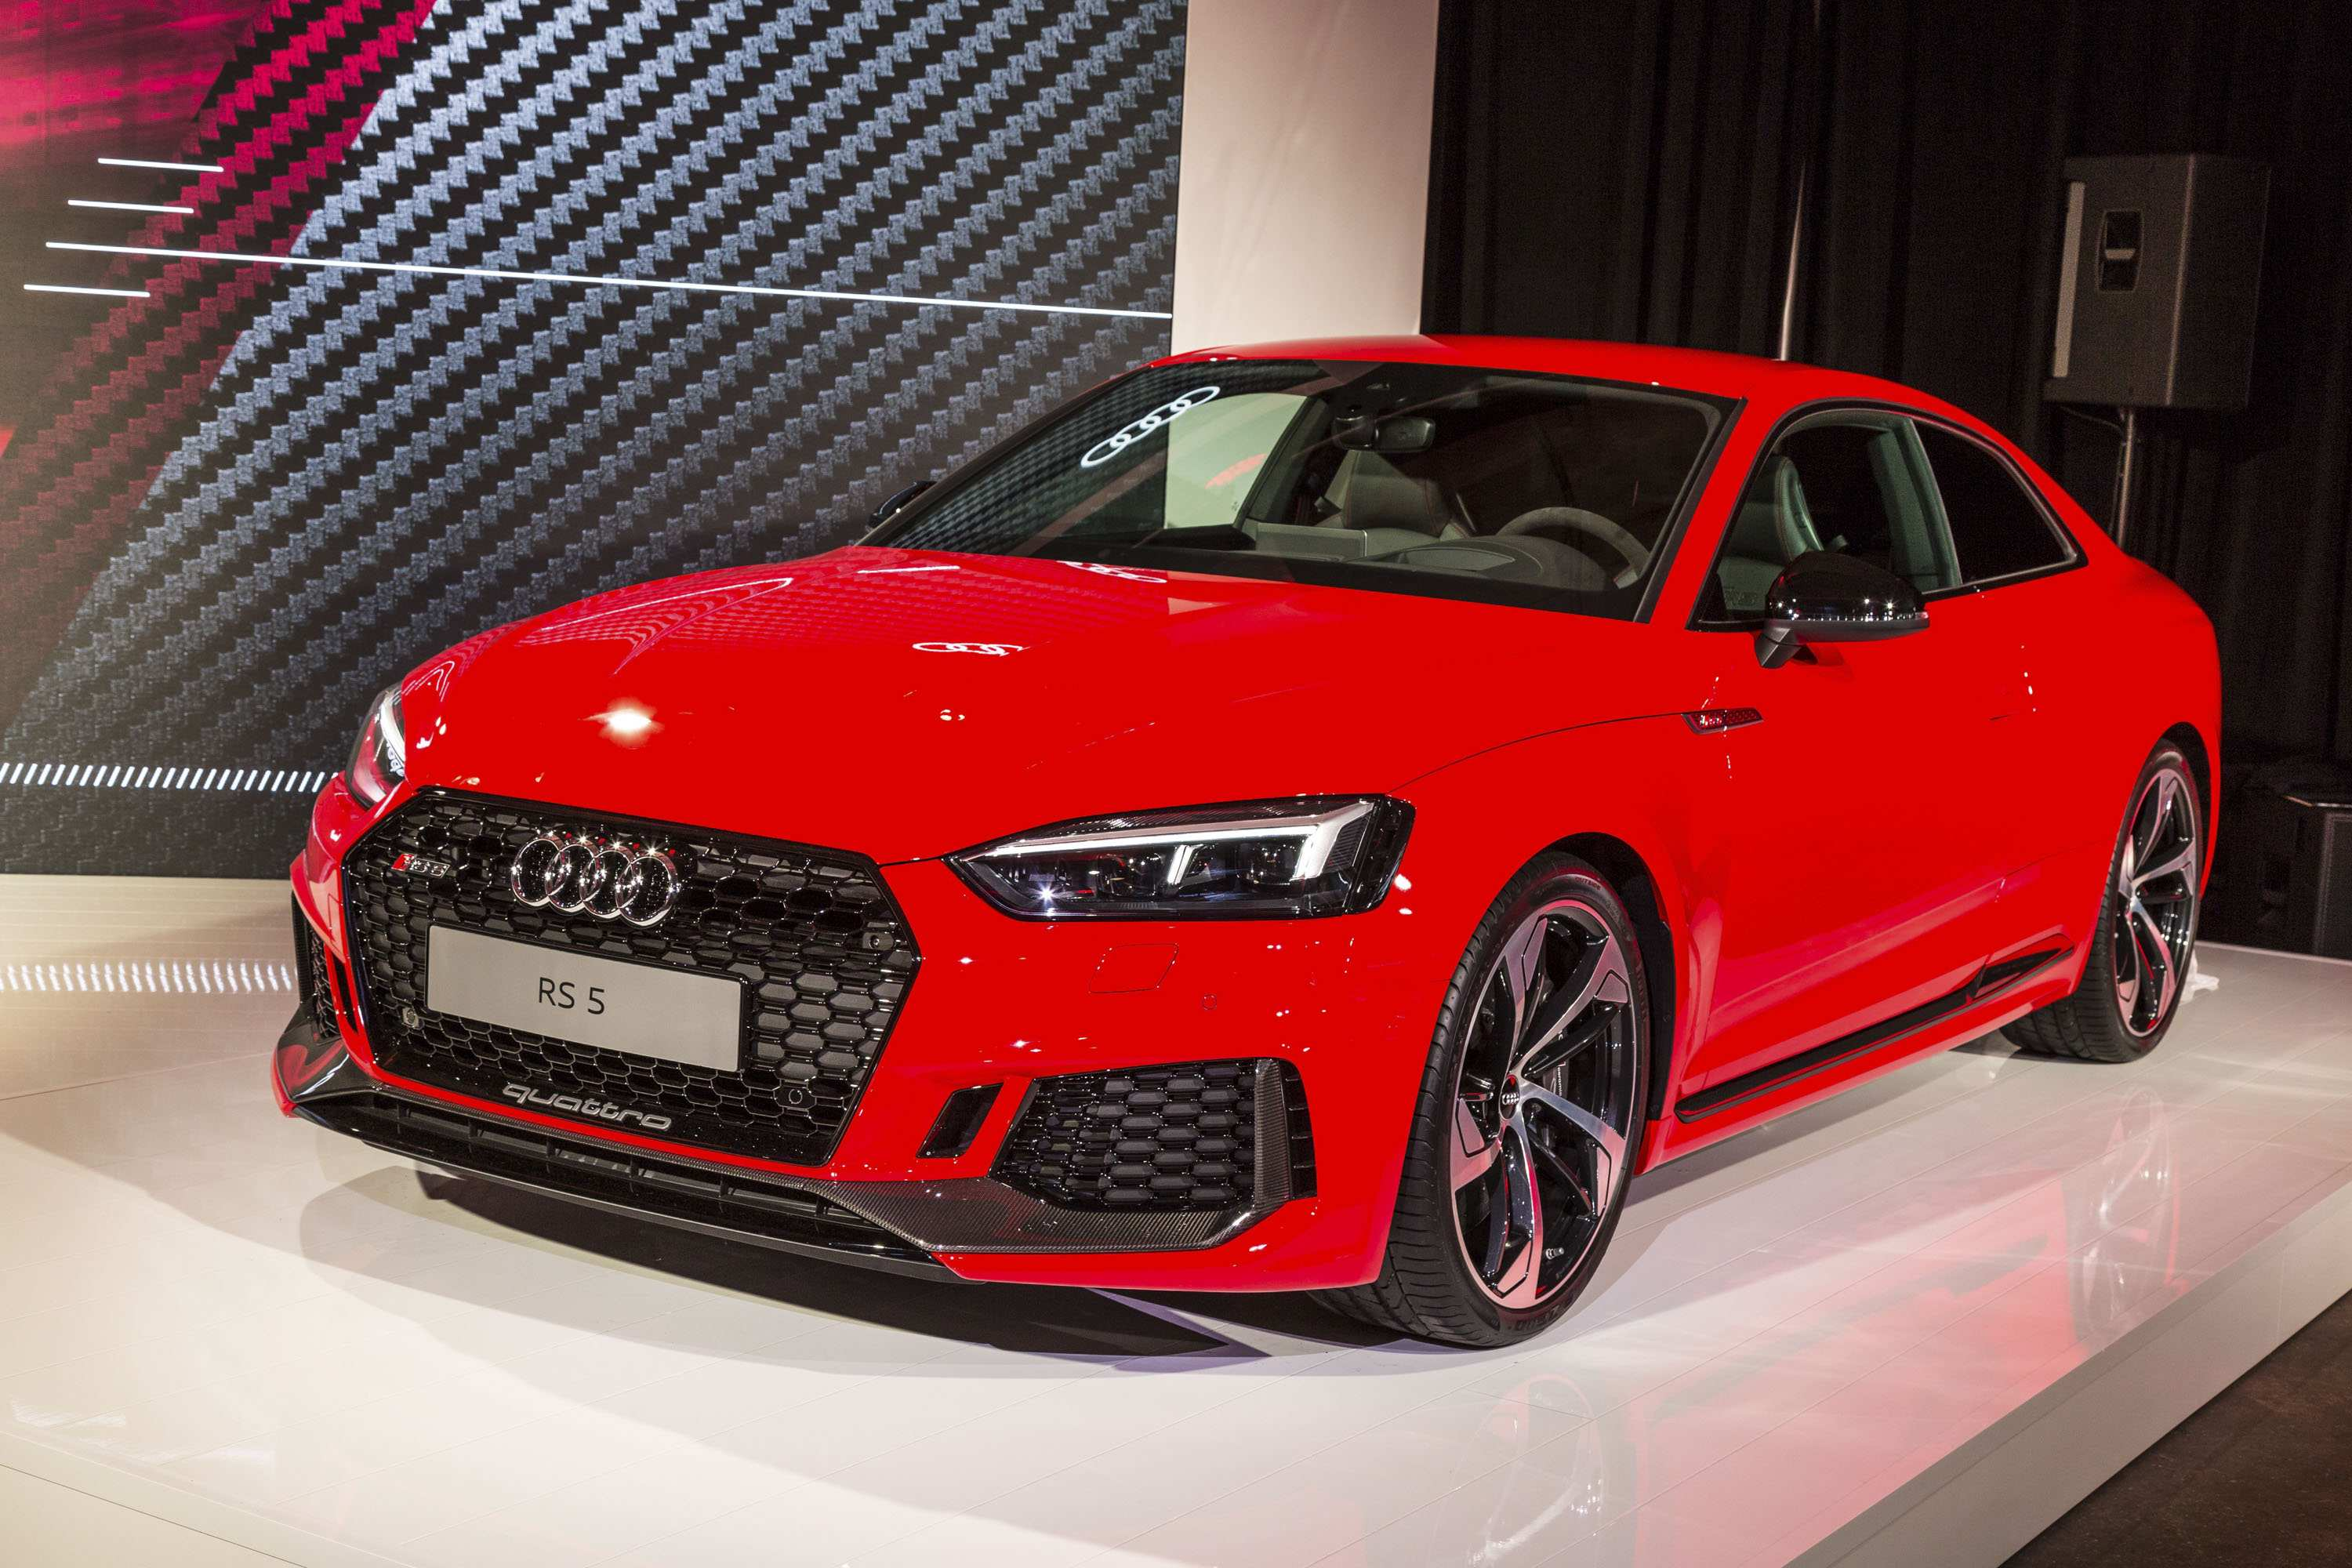 34 Best 2020 Audi Rs5 Images